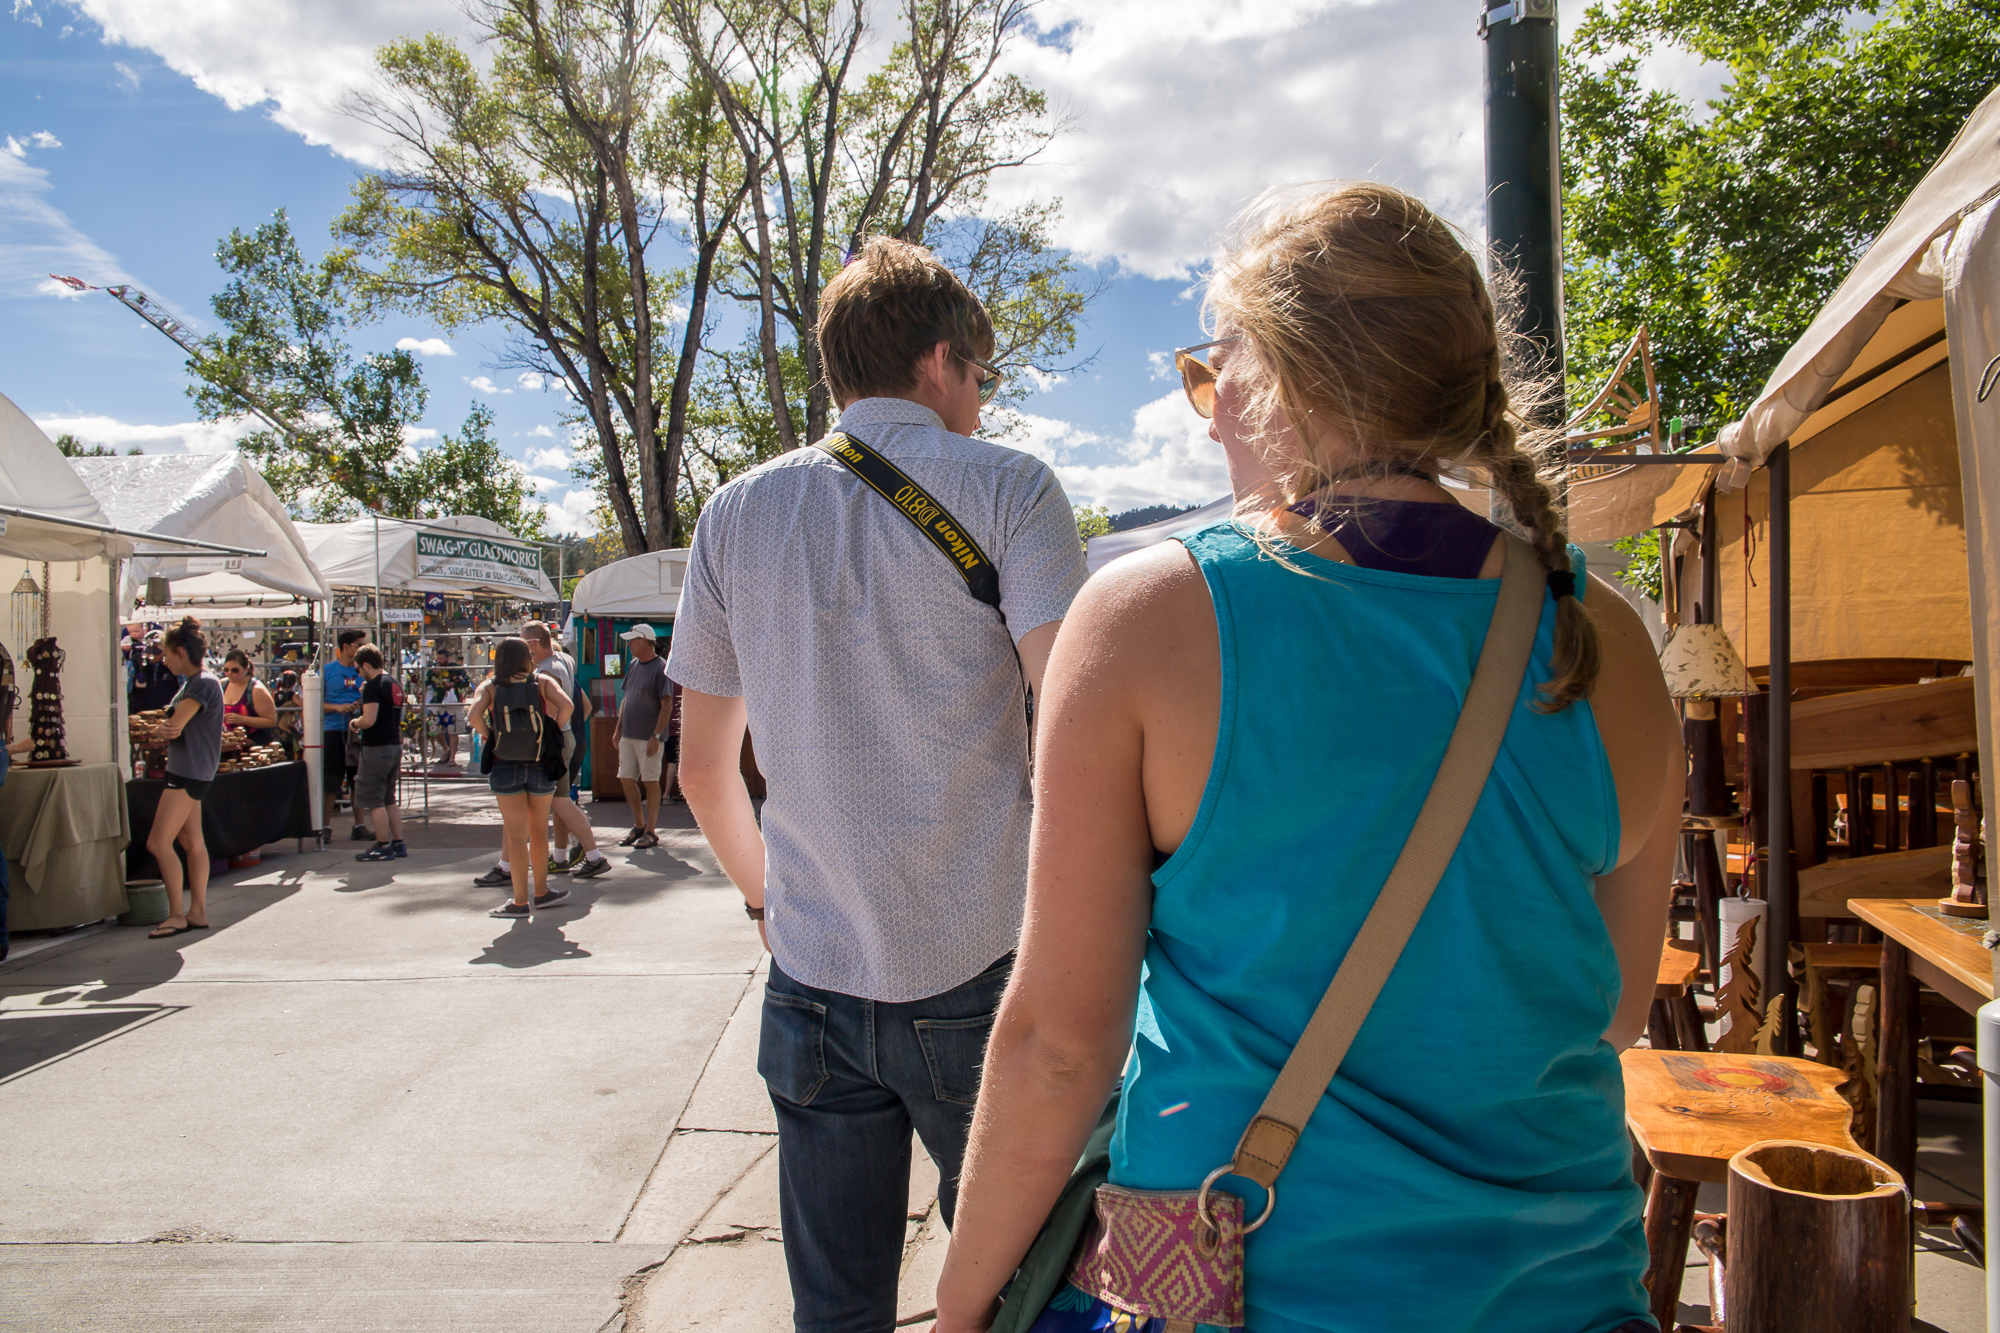 EXPLORING THE DOWNTOWN ARTS & CRAFTS FESTIVAL